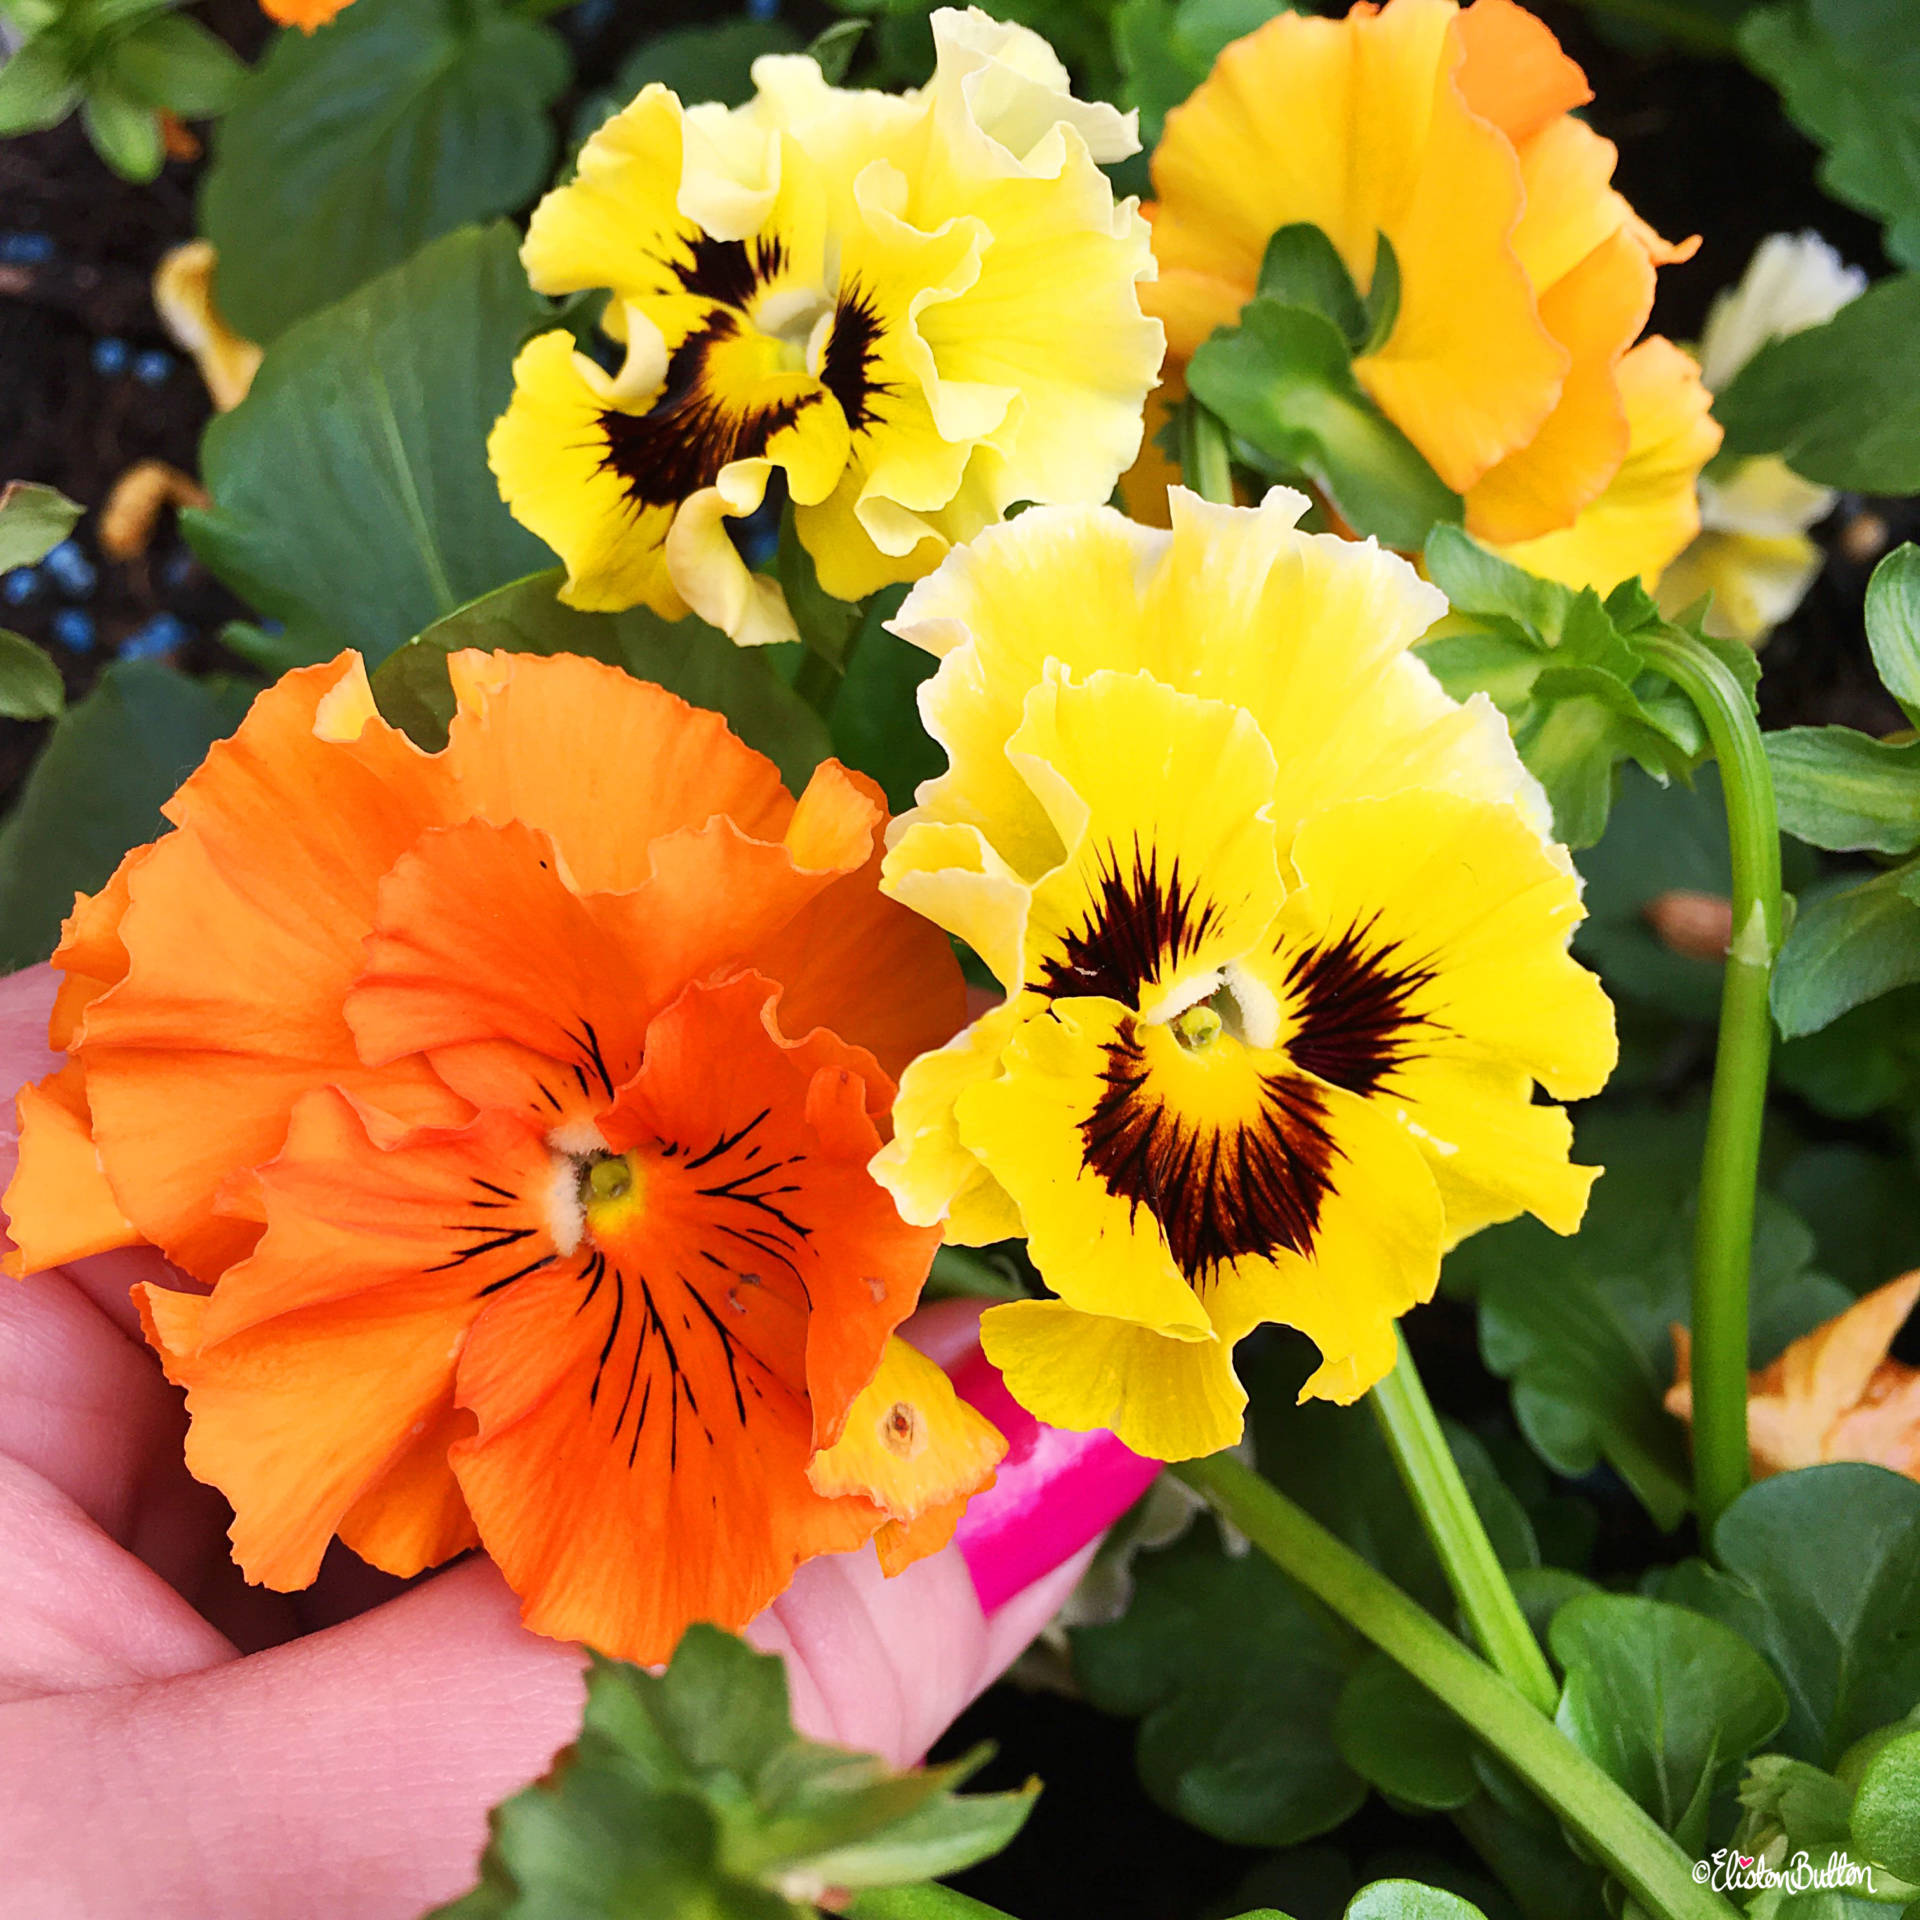 Orange and Yellow Frilly Pansies - Around Here…September 2016 at www.elistonbutton.com - Eliston Button - That Crafty Kid – Art, Design, Craft & Adventure.